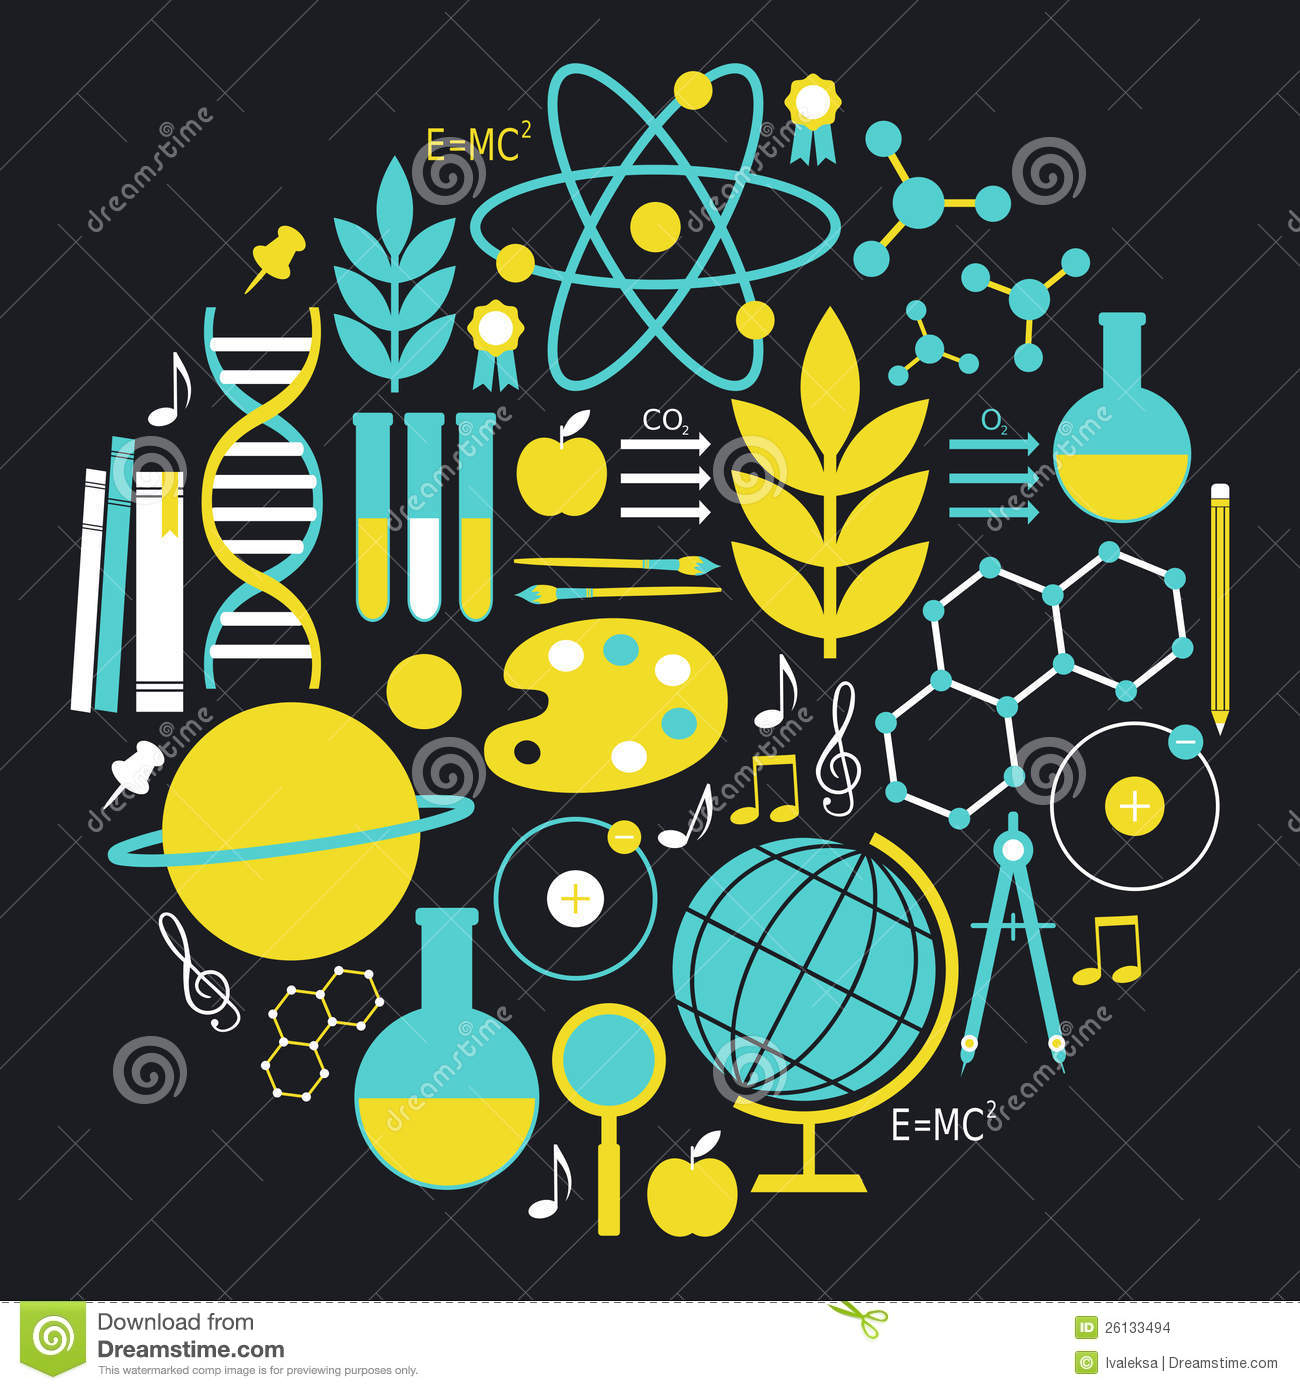 scientific education Science education is the field concerned with sharing science content and process with individuals not traditionally considered part of the scientific community.